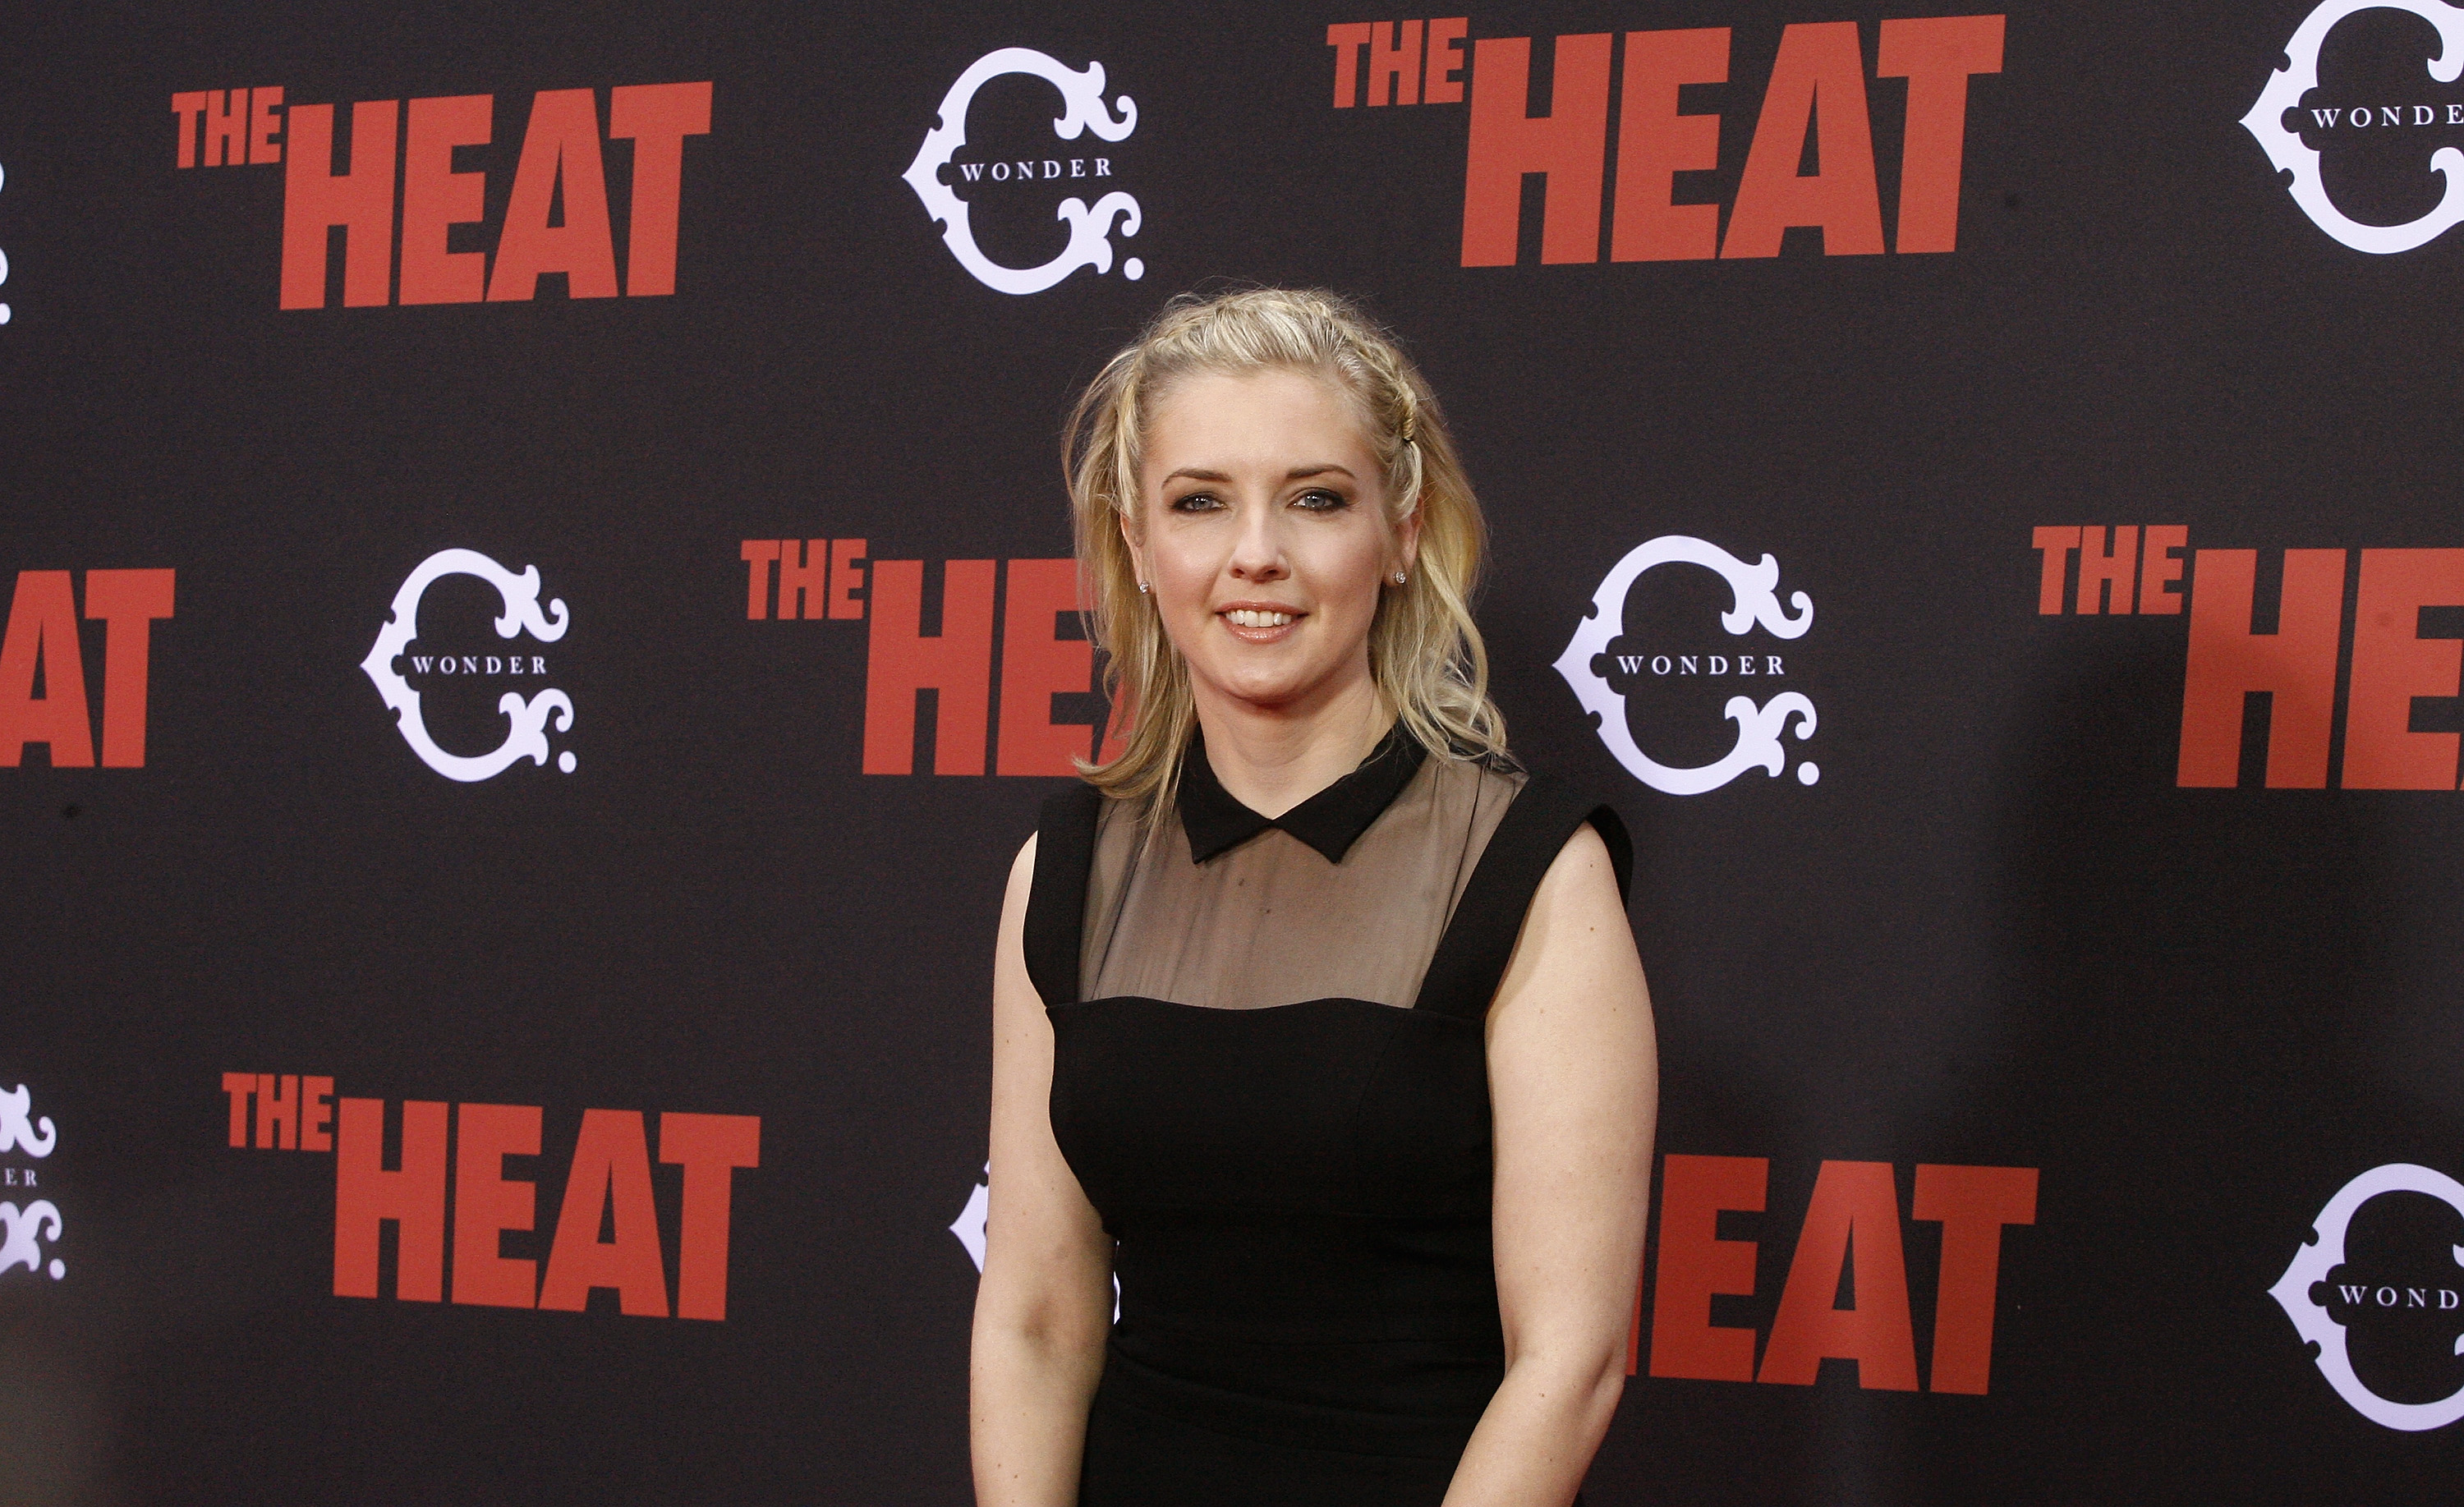 Screenwriter/actress Katie Dippold attends  The Heat  New York Premiere at Ziegfeld Theatre on June 23, 2013 in New York City.